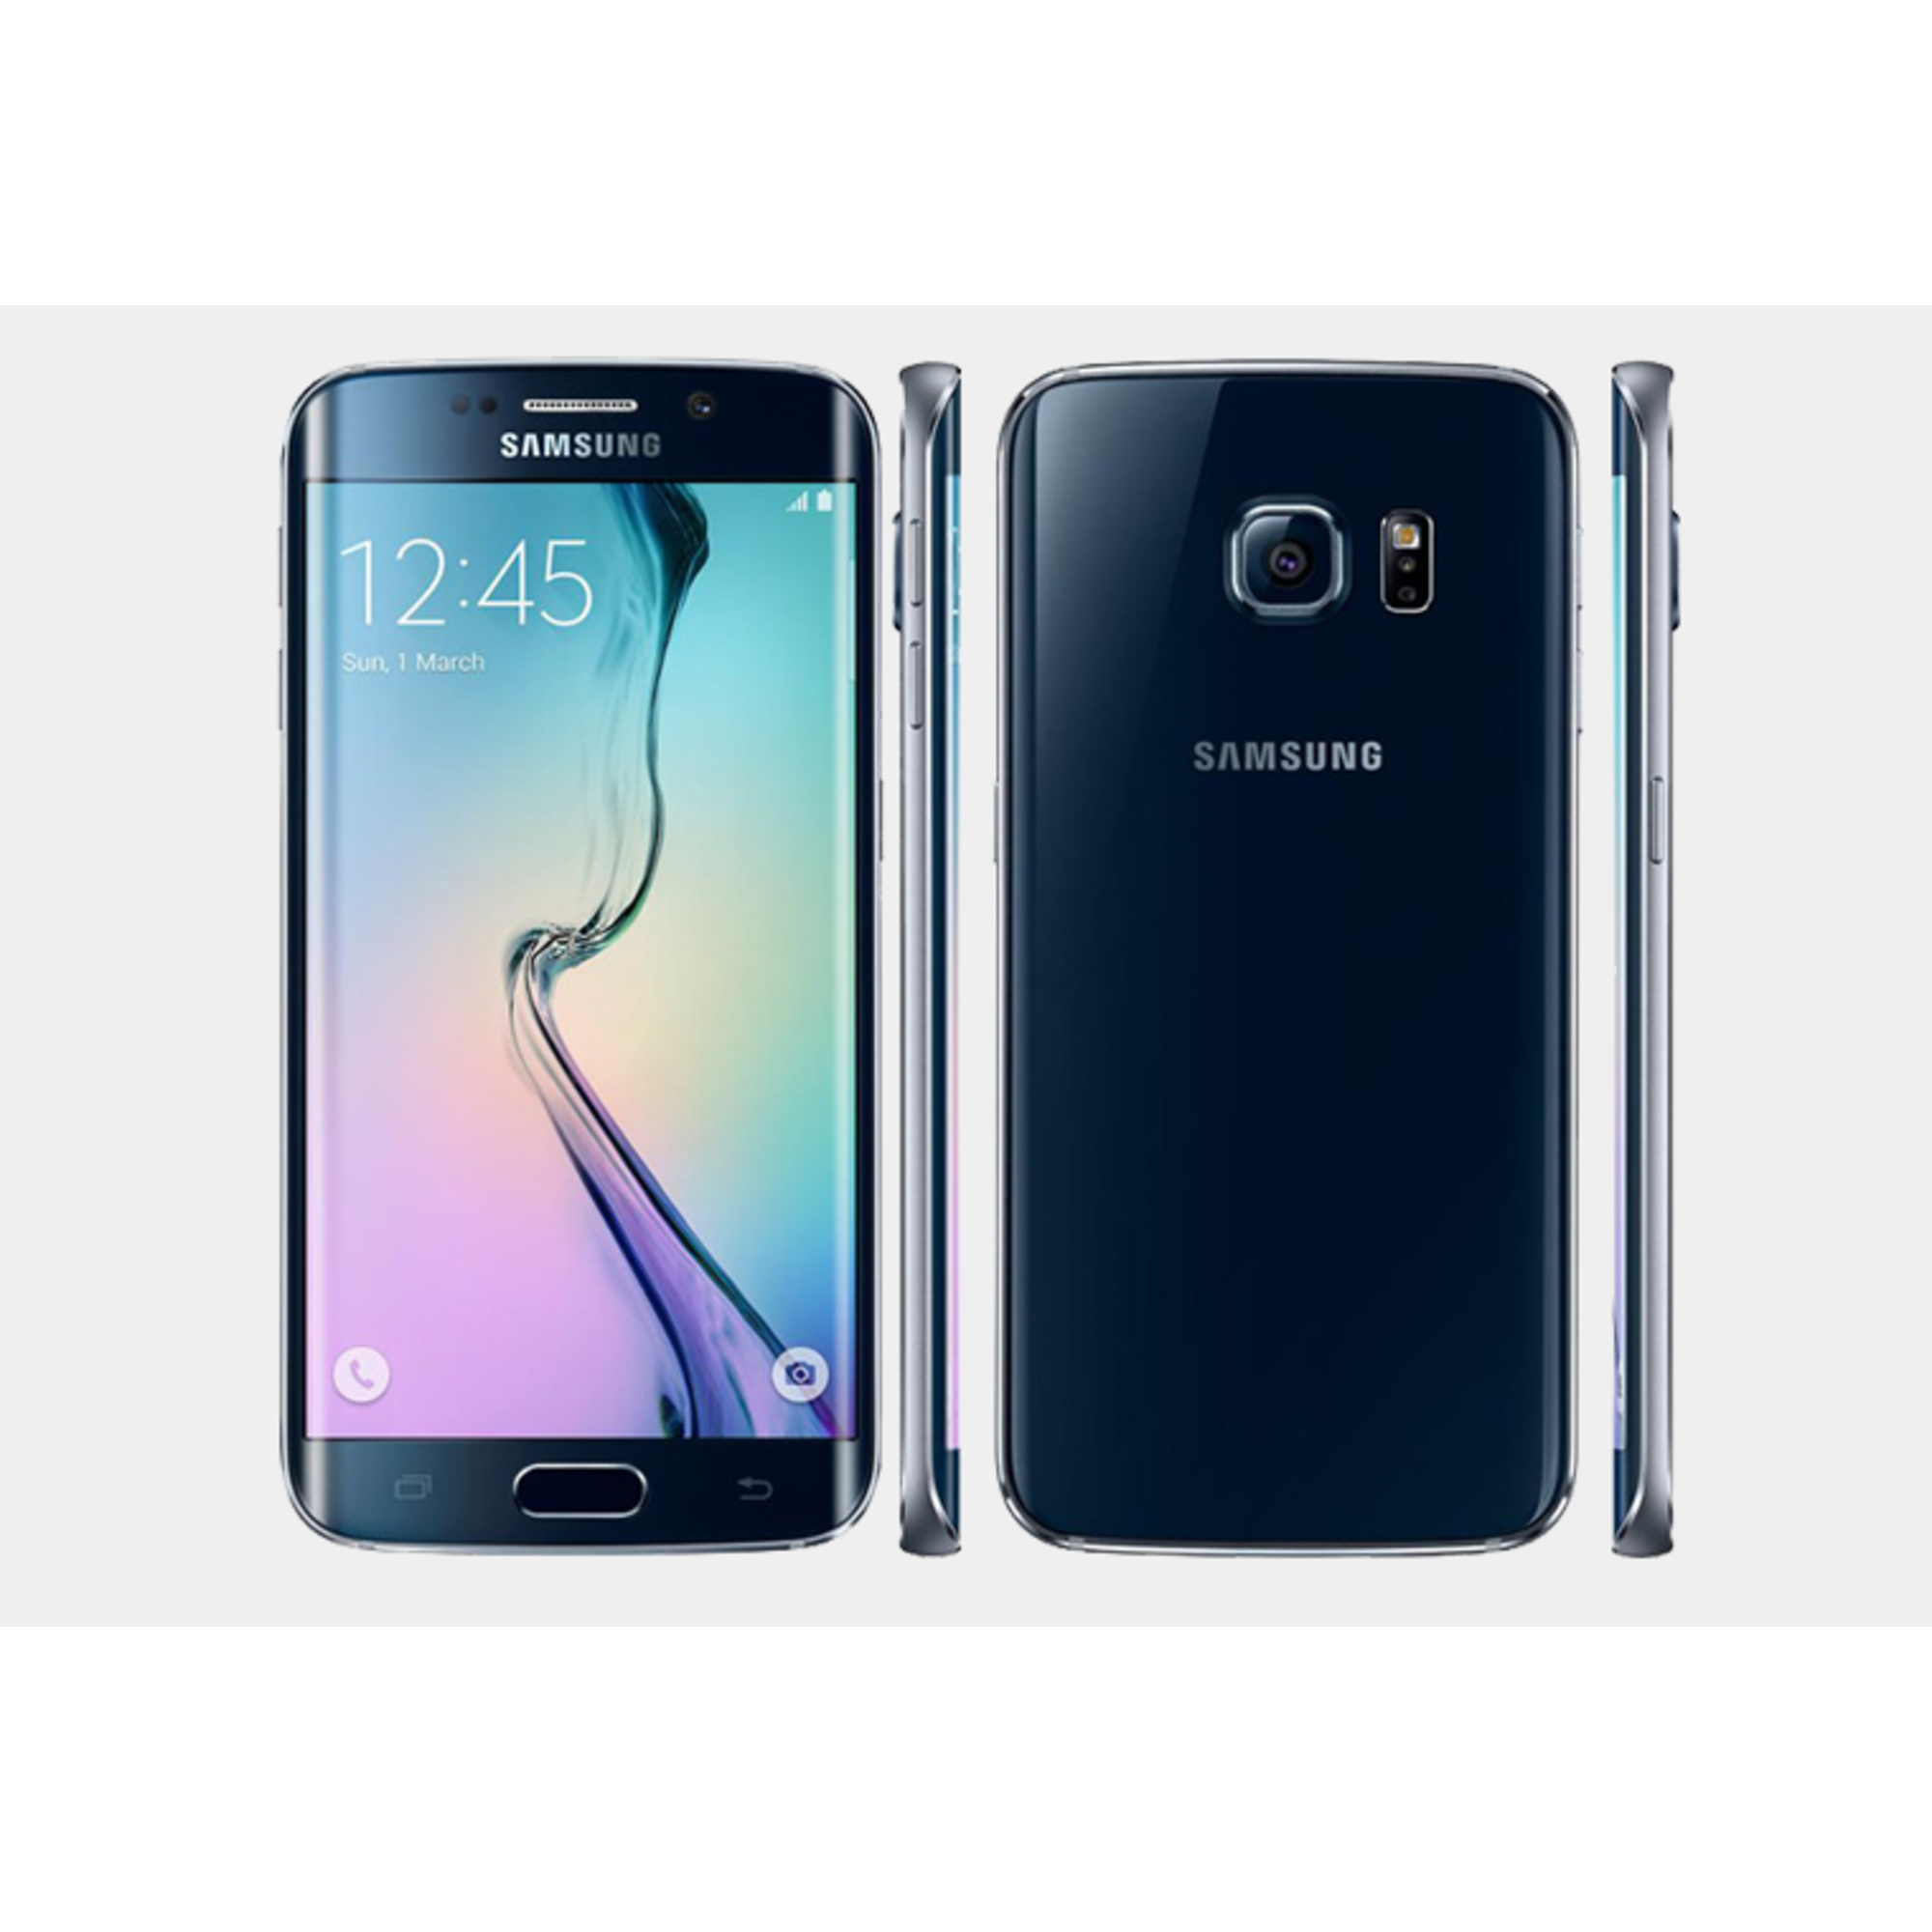 samsung galaxy s6 edge 32gb unlocked gsm lte 16mp phone certified refurbished ebay. Black Bedroom Furniture Sets. Home Design Ideas